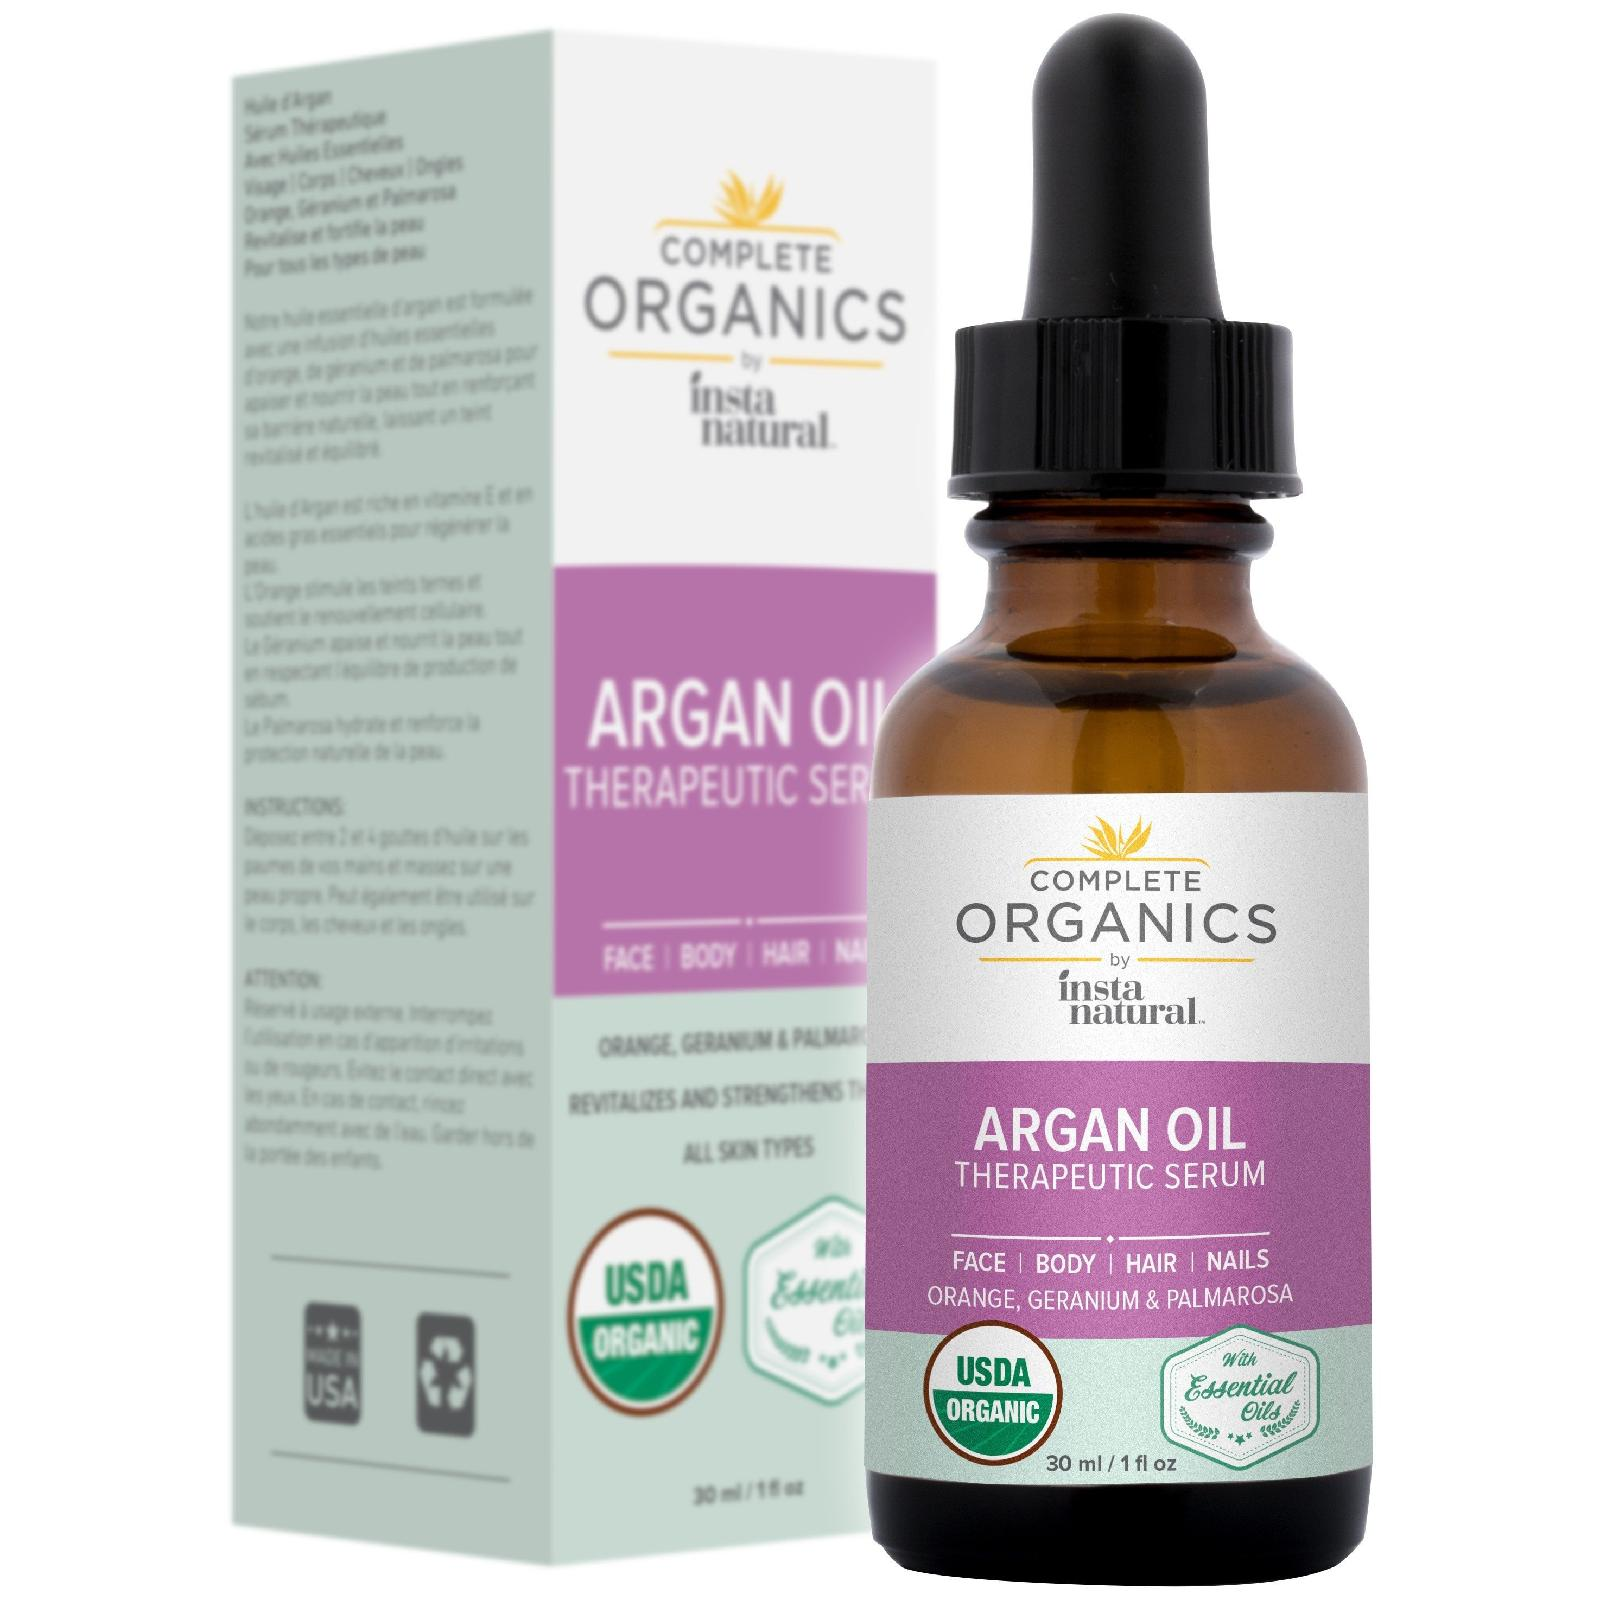 Complete Organics - Argan Oil Therapeutic Serum